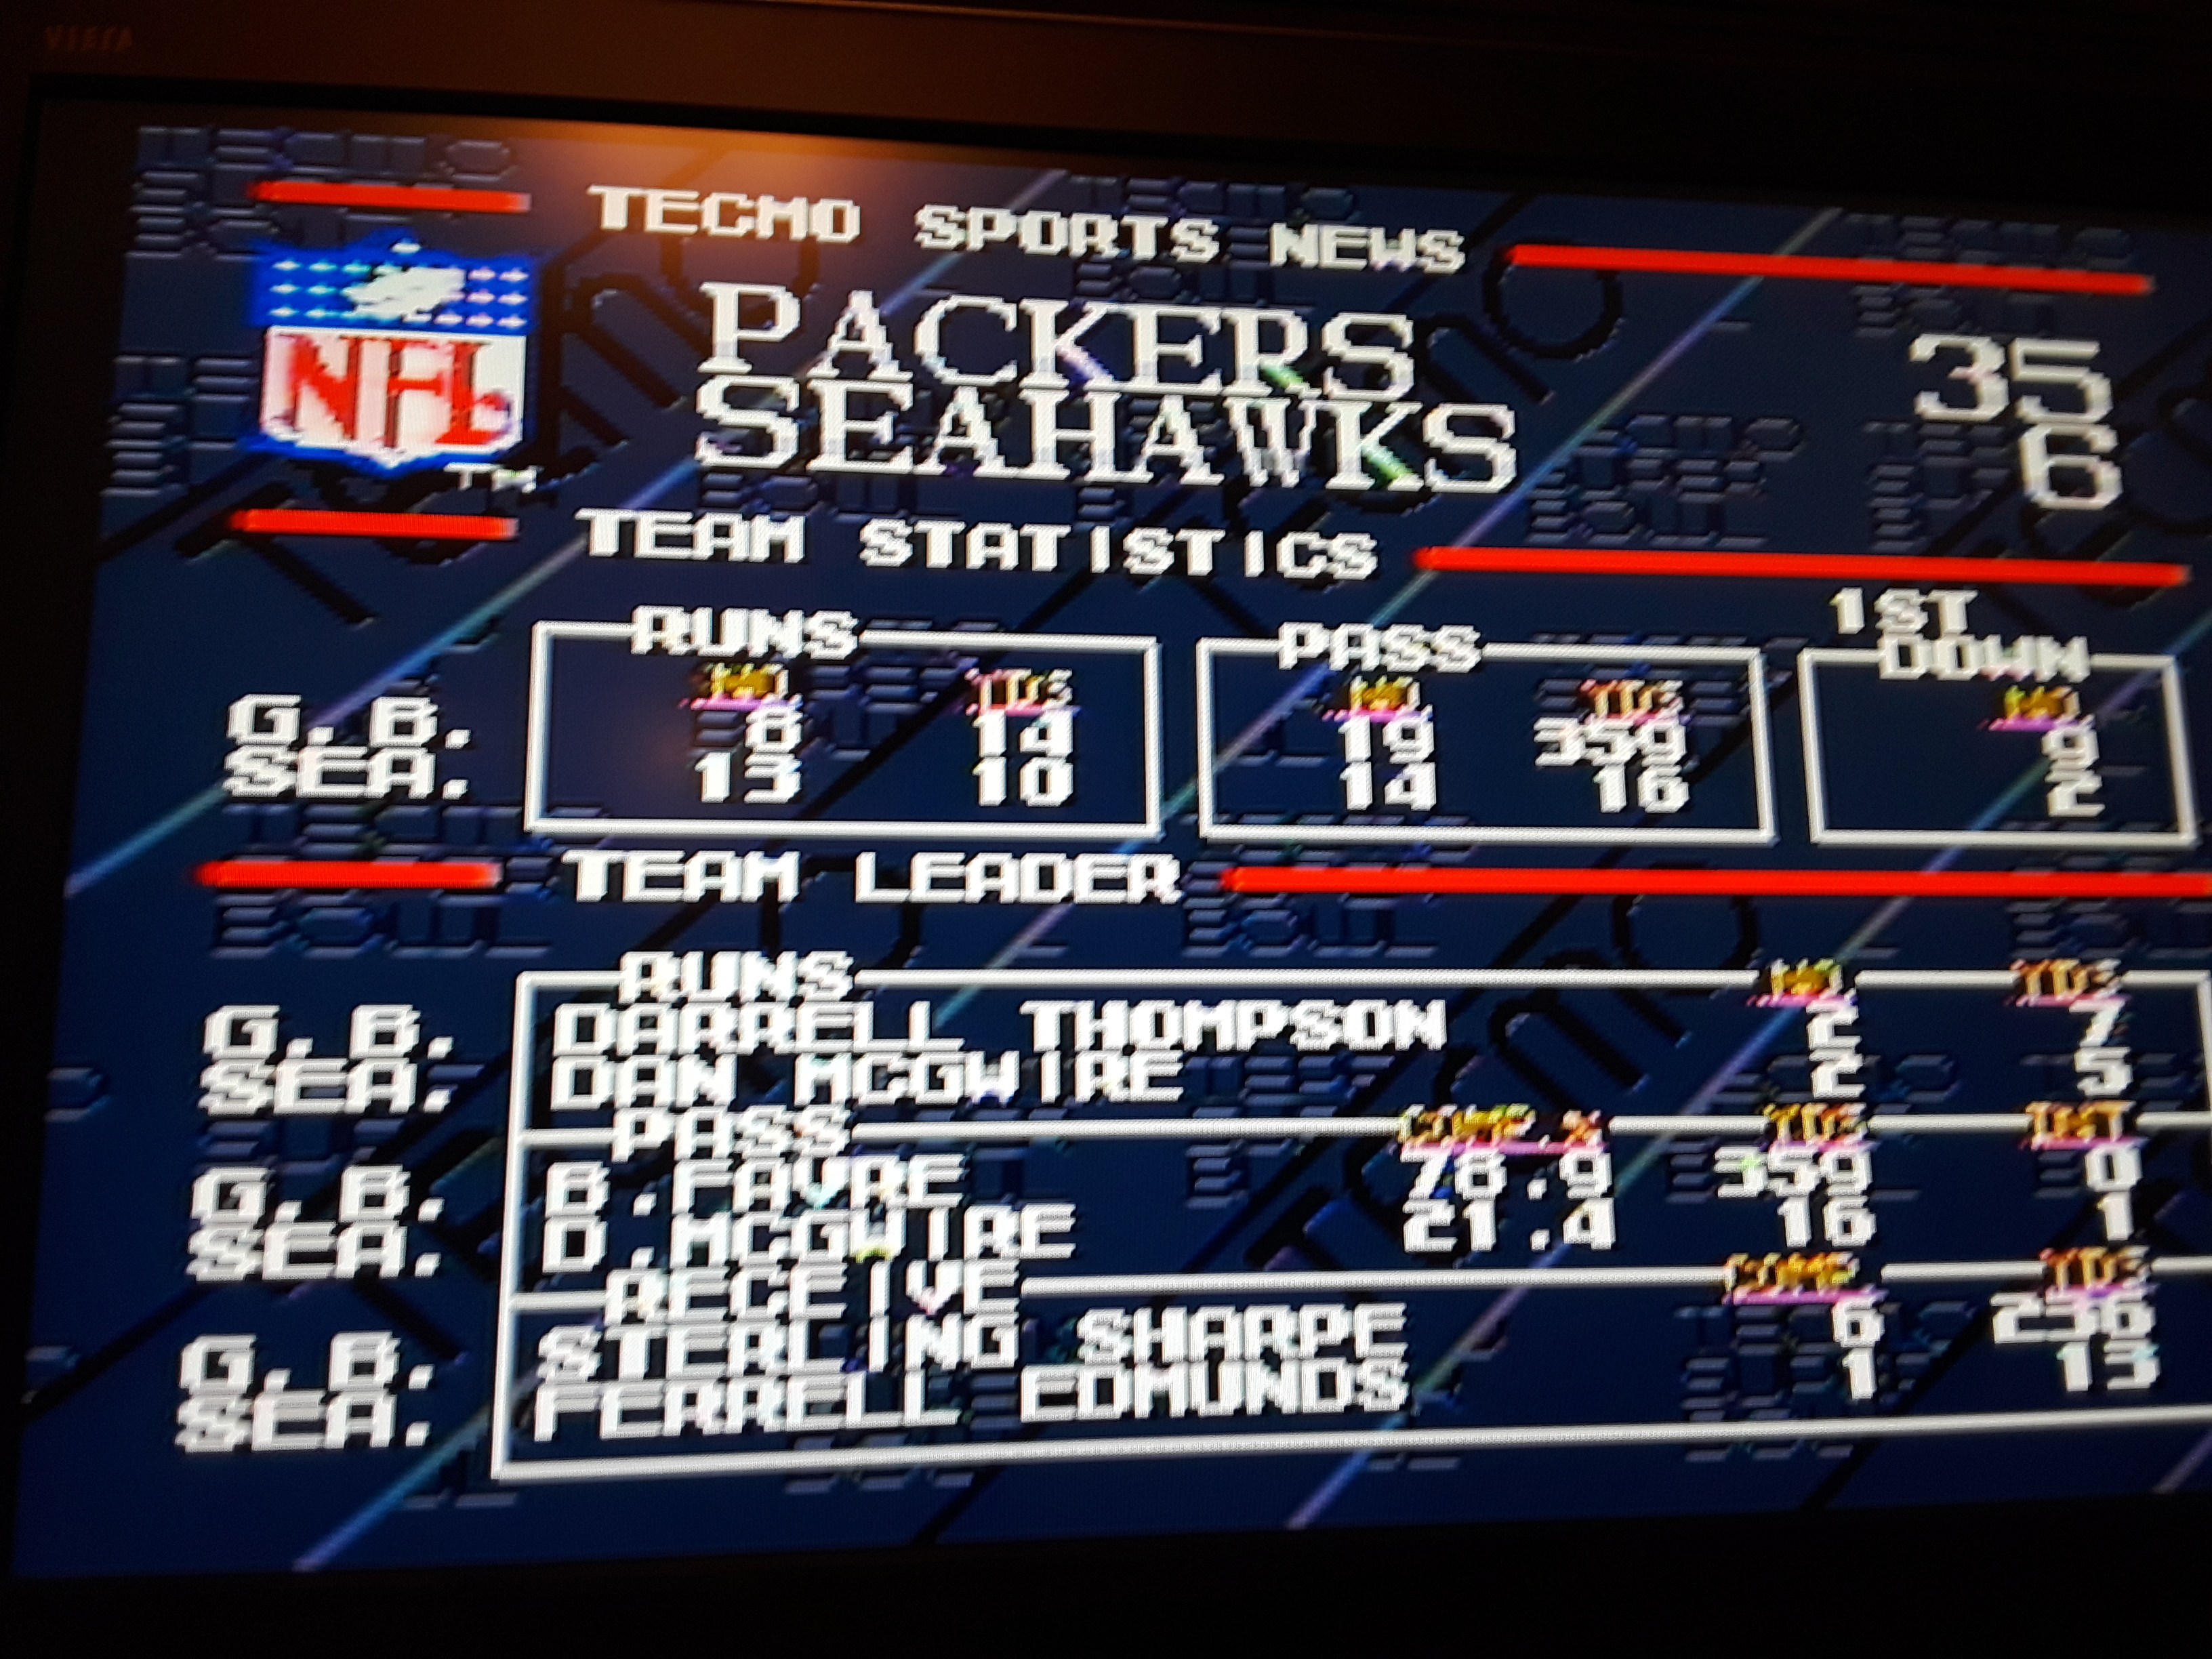 Tecmo Super Bowl [Least Yards Allowed In A Preseason Game] 26 points